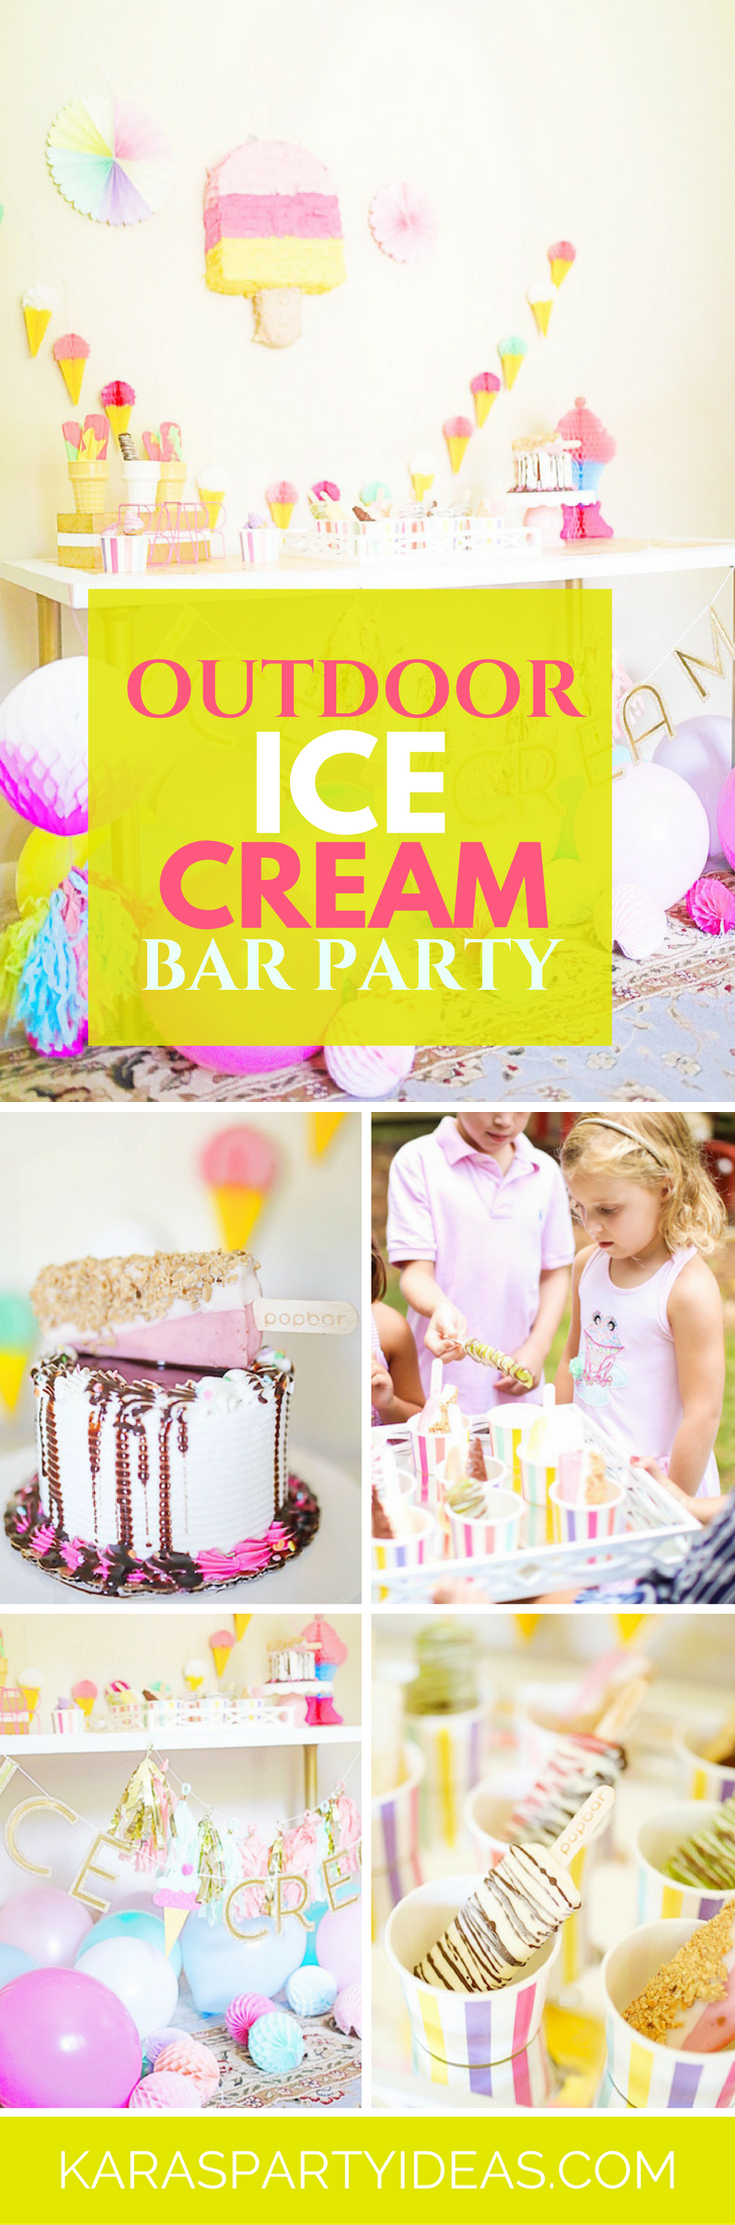 Outdoor Ice Cream Bar Party via Kara's Party Ideas - KarasPartyIdeas.com